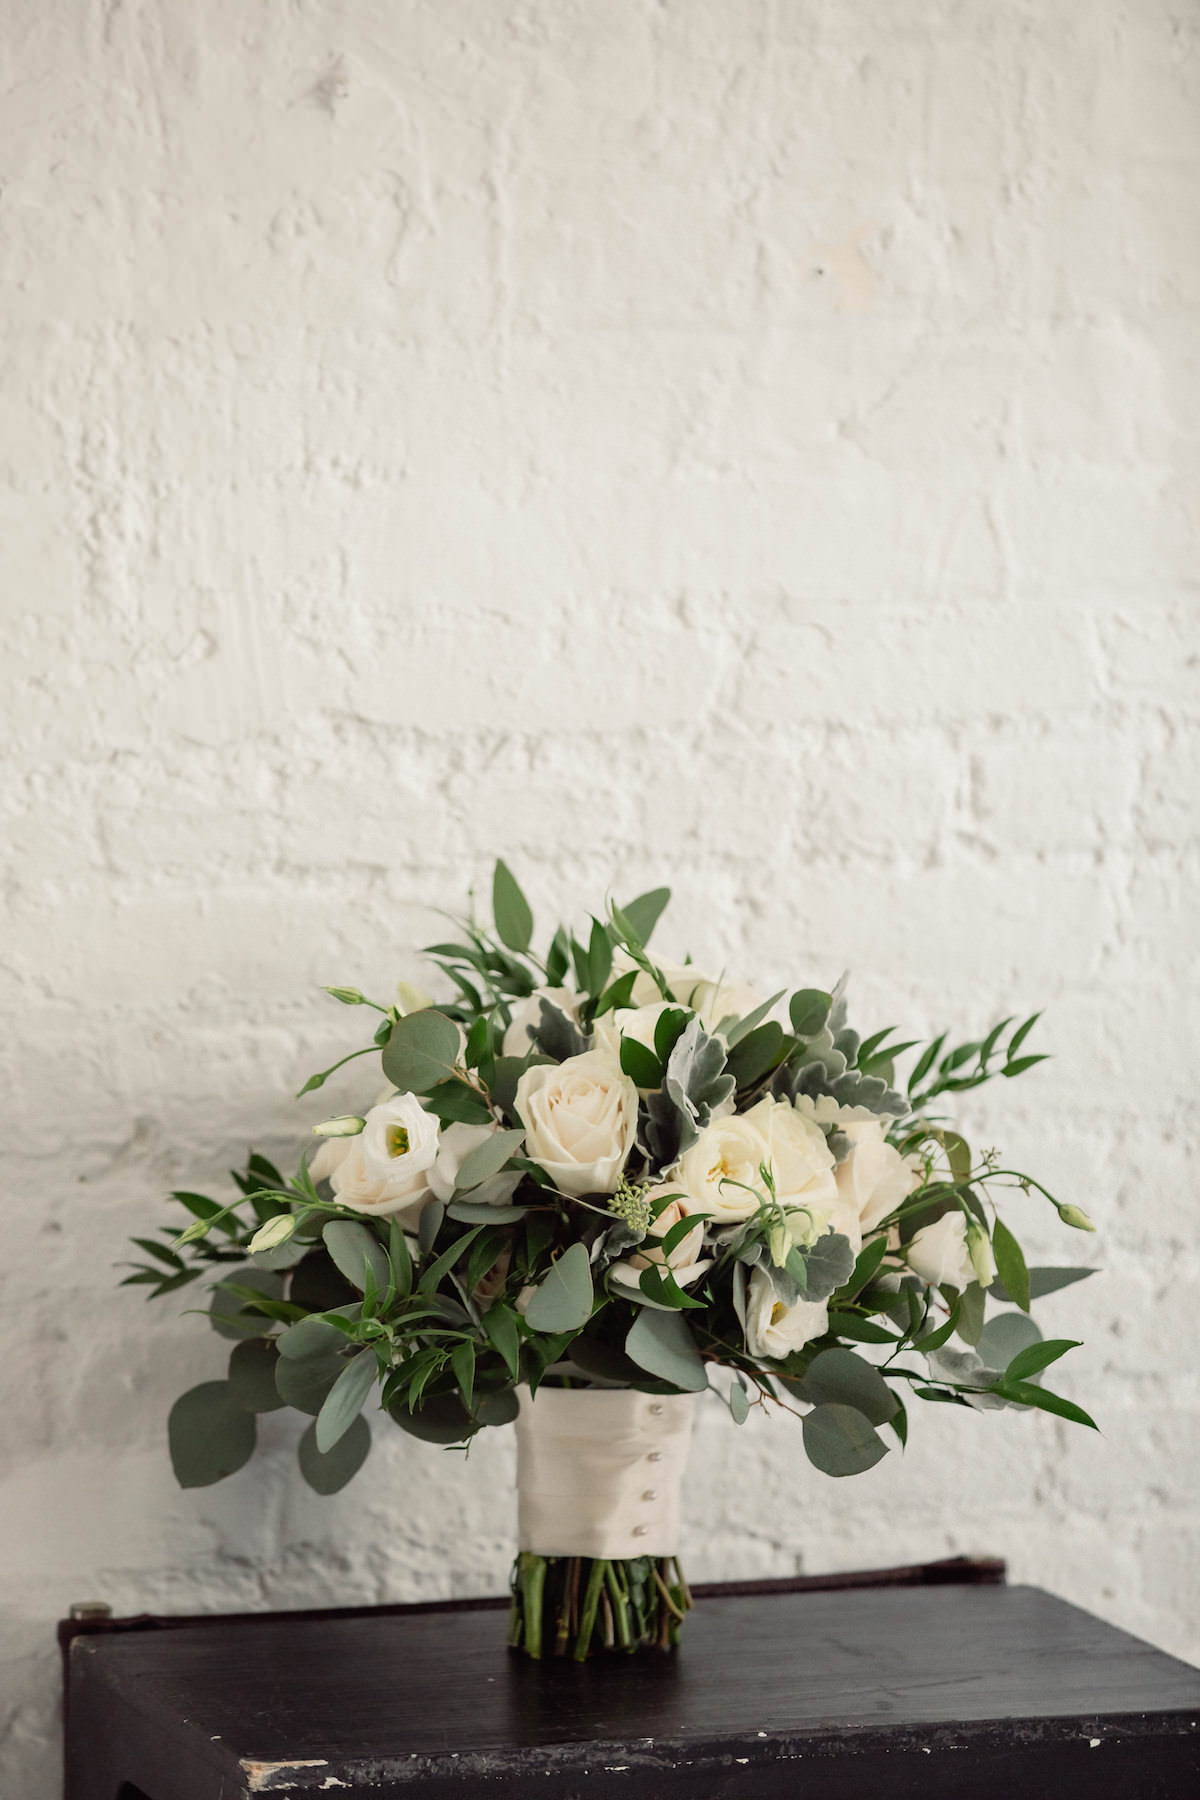 Wedding bouquet with white flowers - Photography: Charming Images